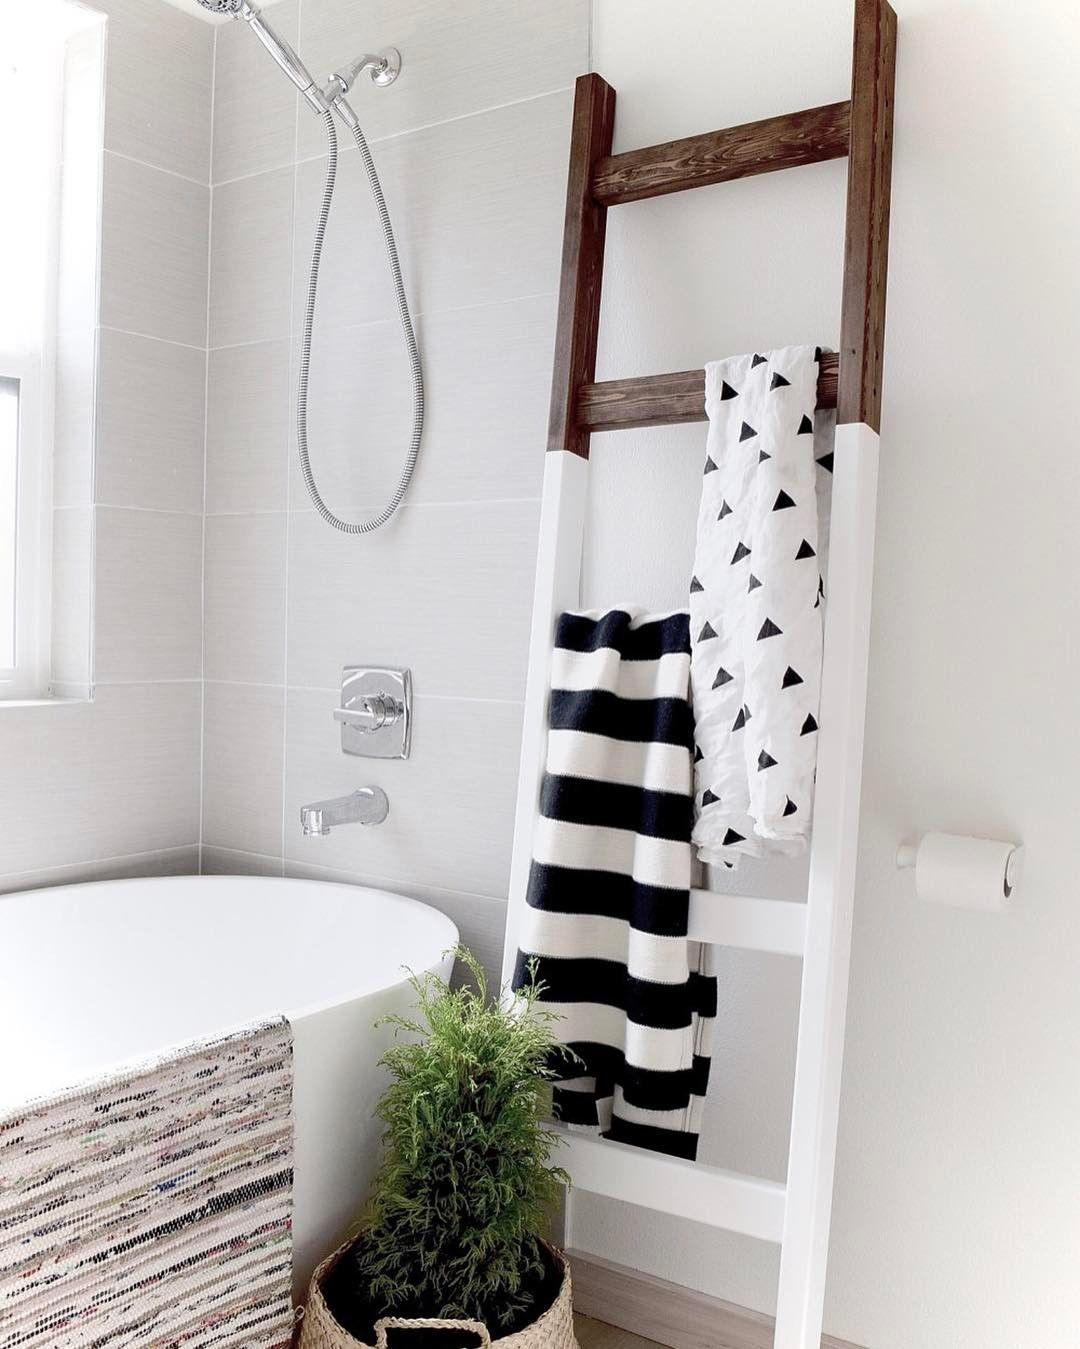 Simply Brilliant I Like The Rolled Instead Of Folded And The Half Painted Bathroom Decor Small Bathroom